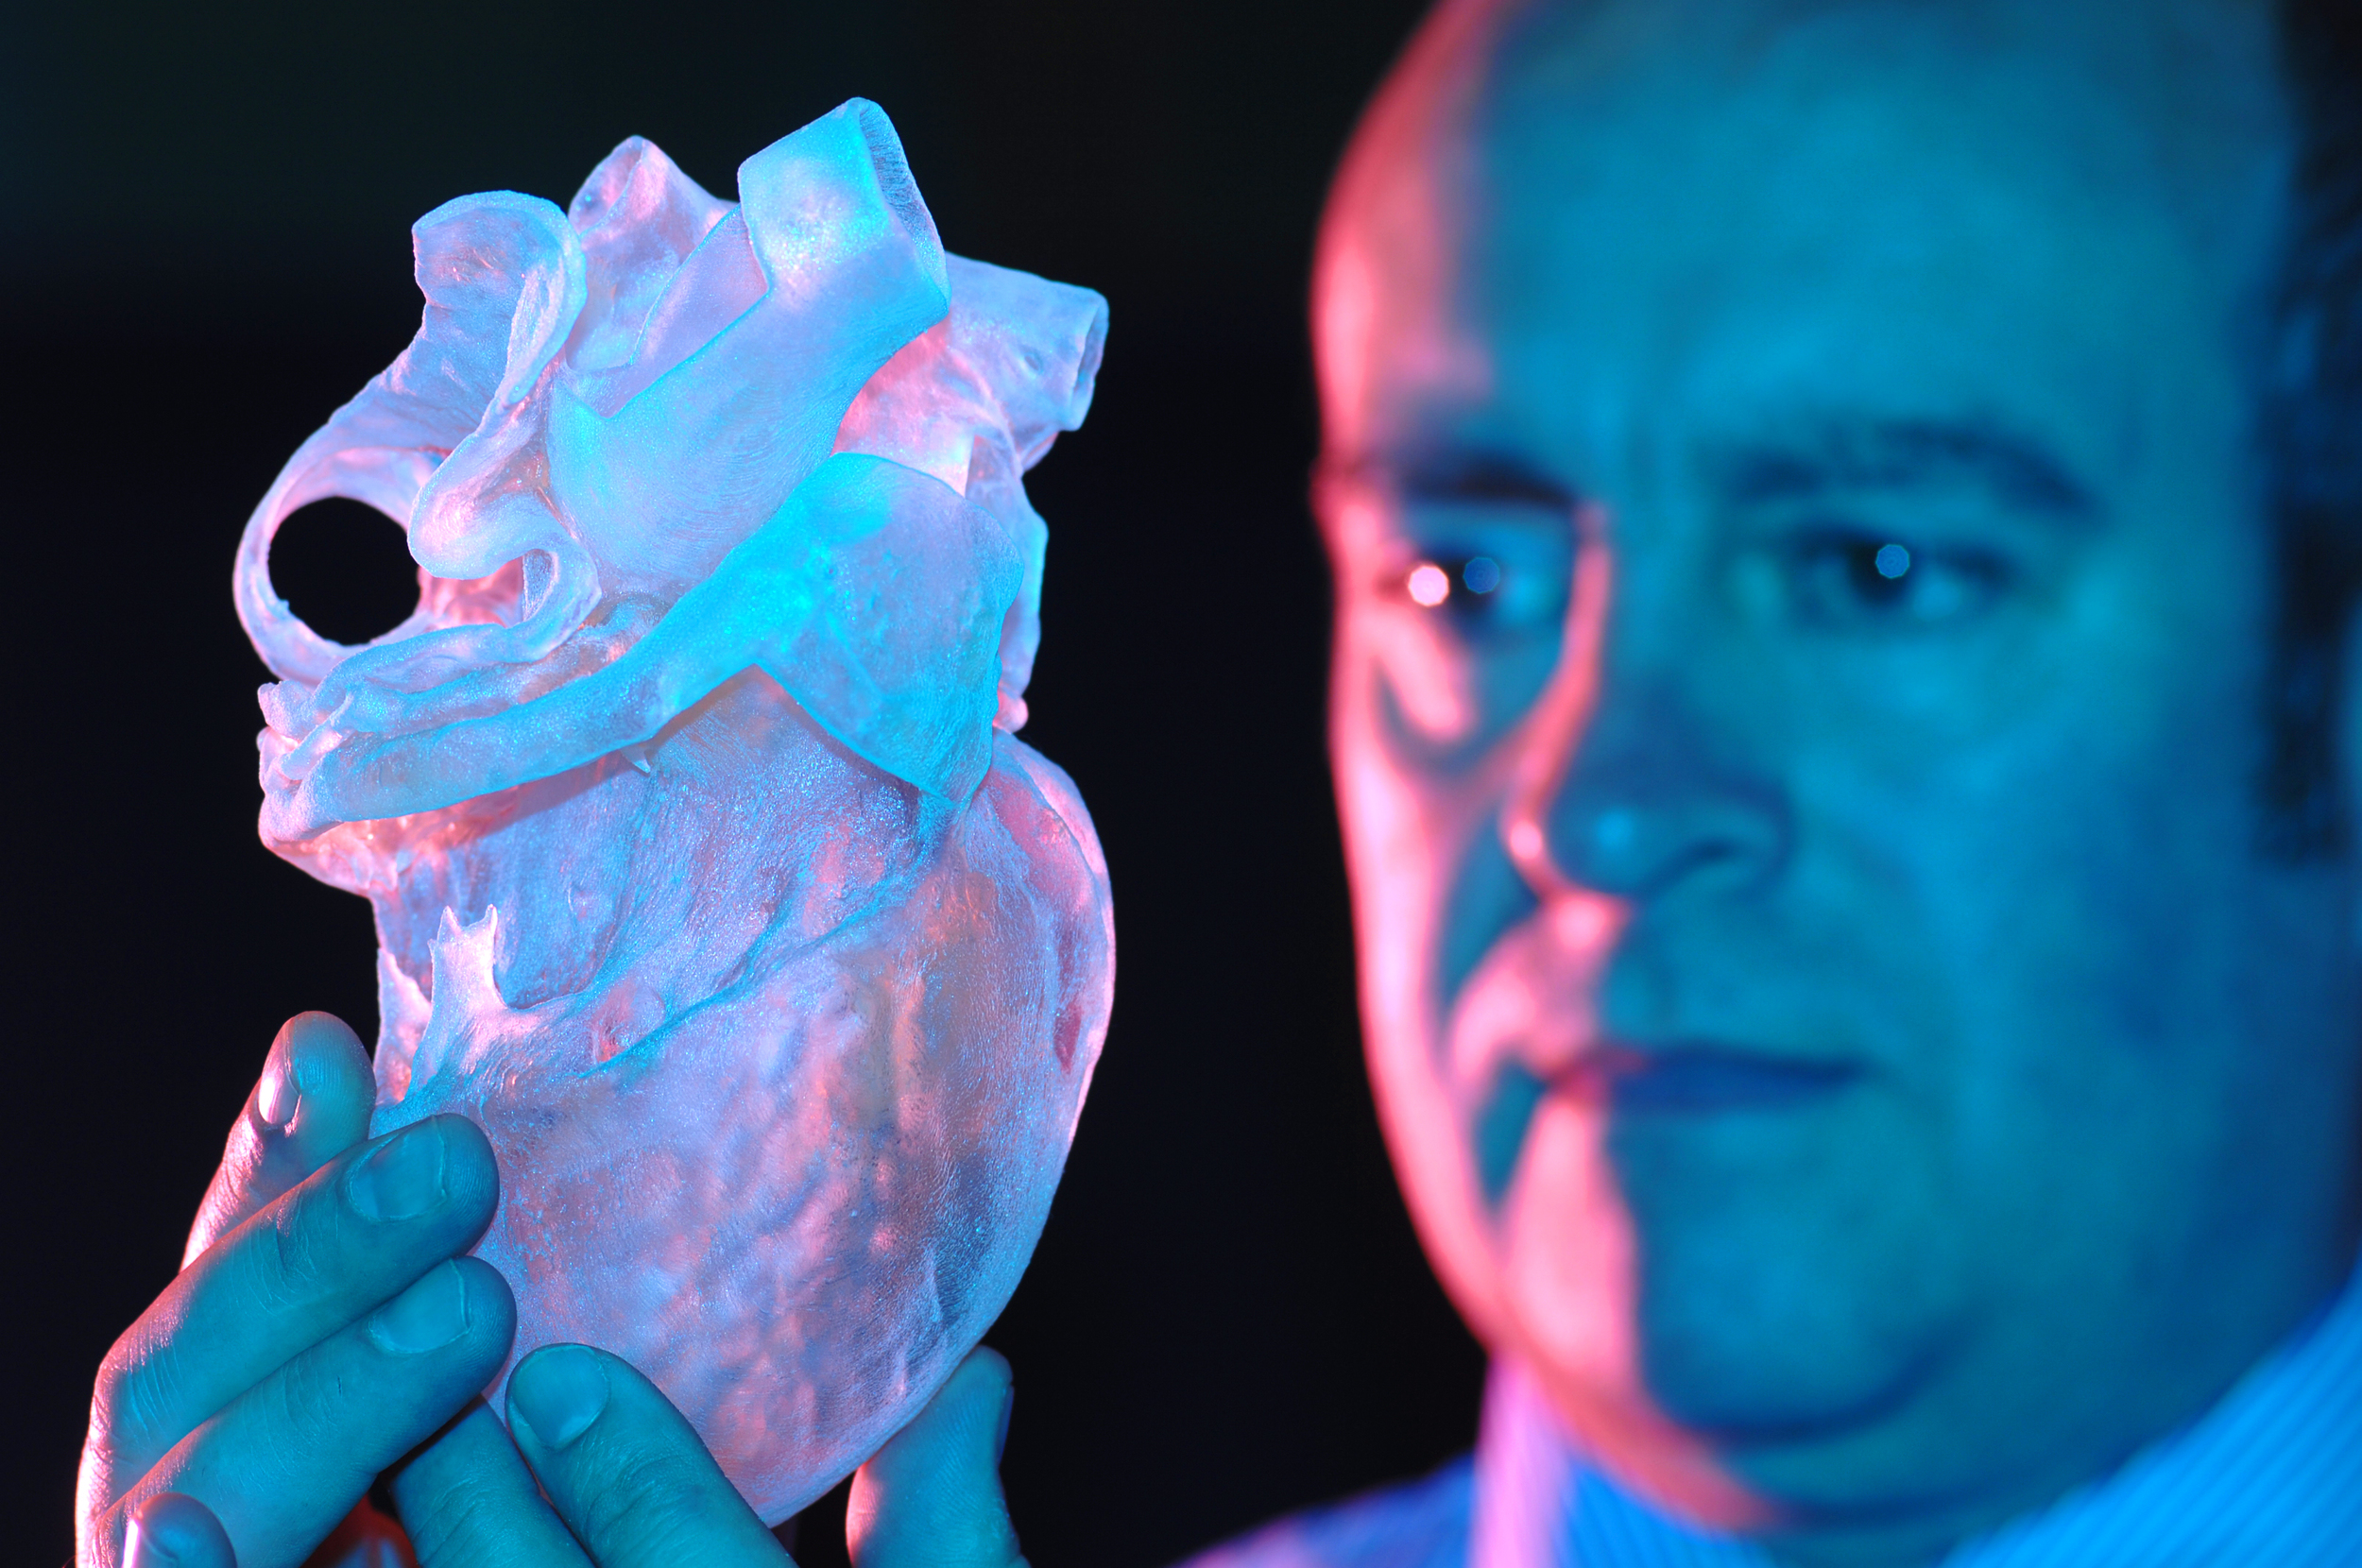 Dr. Greg Gibbons with 3D Printed derived from Leonardo da Vinci's drawing. Source: University of Warwick